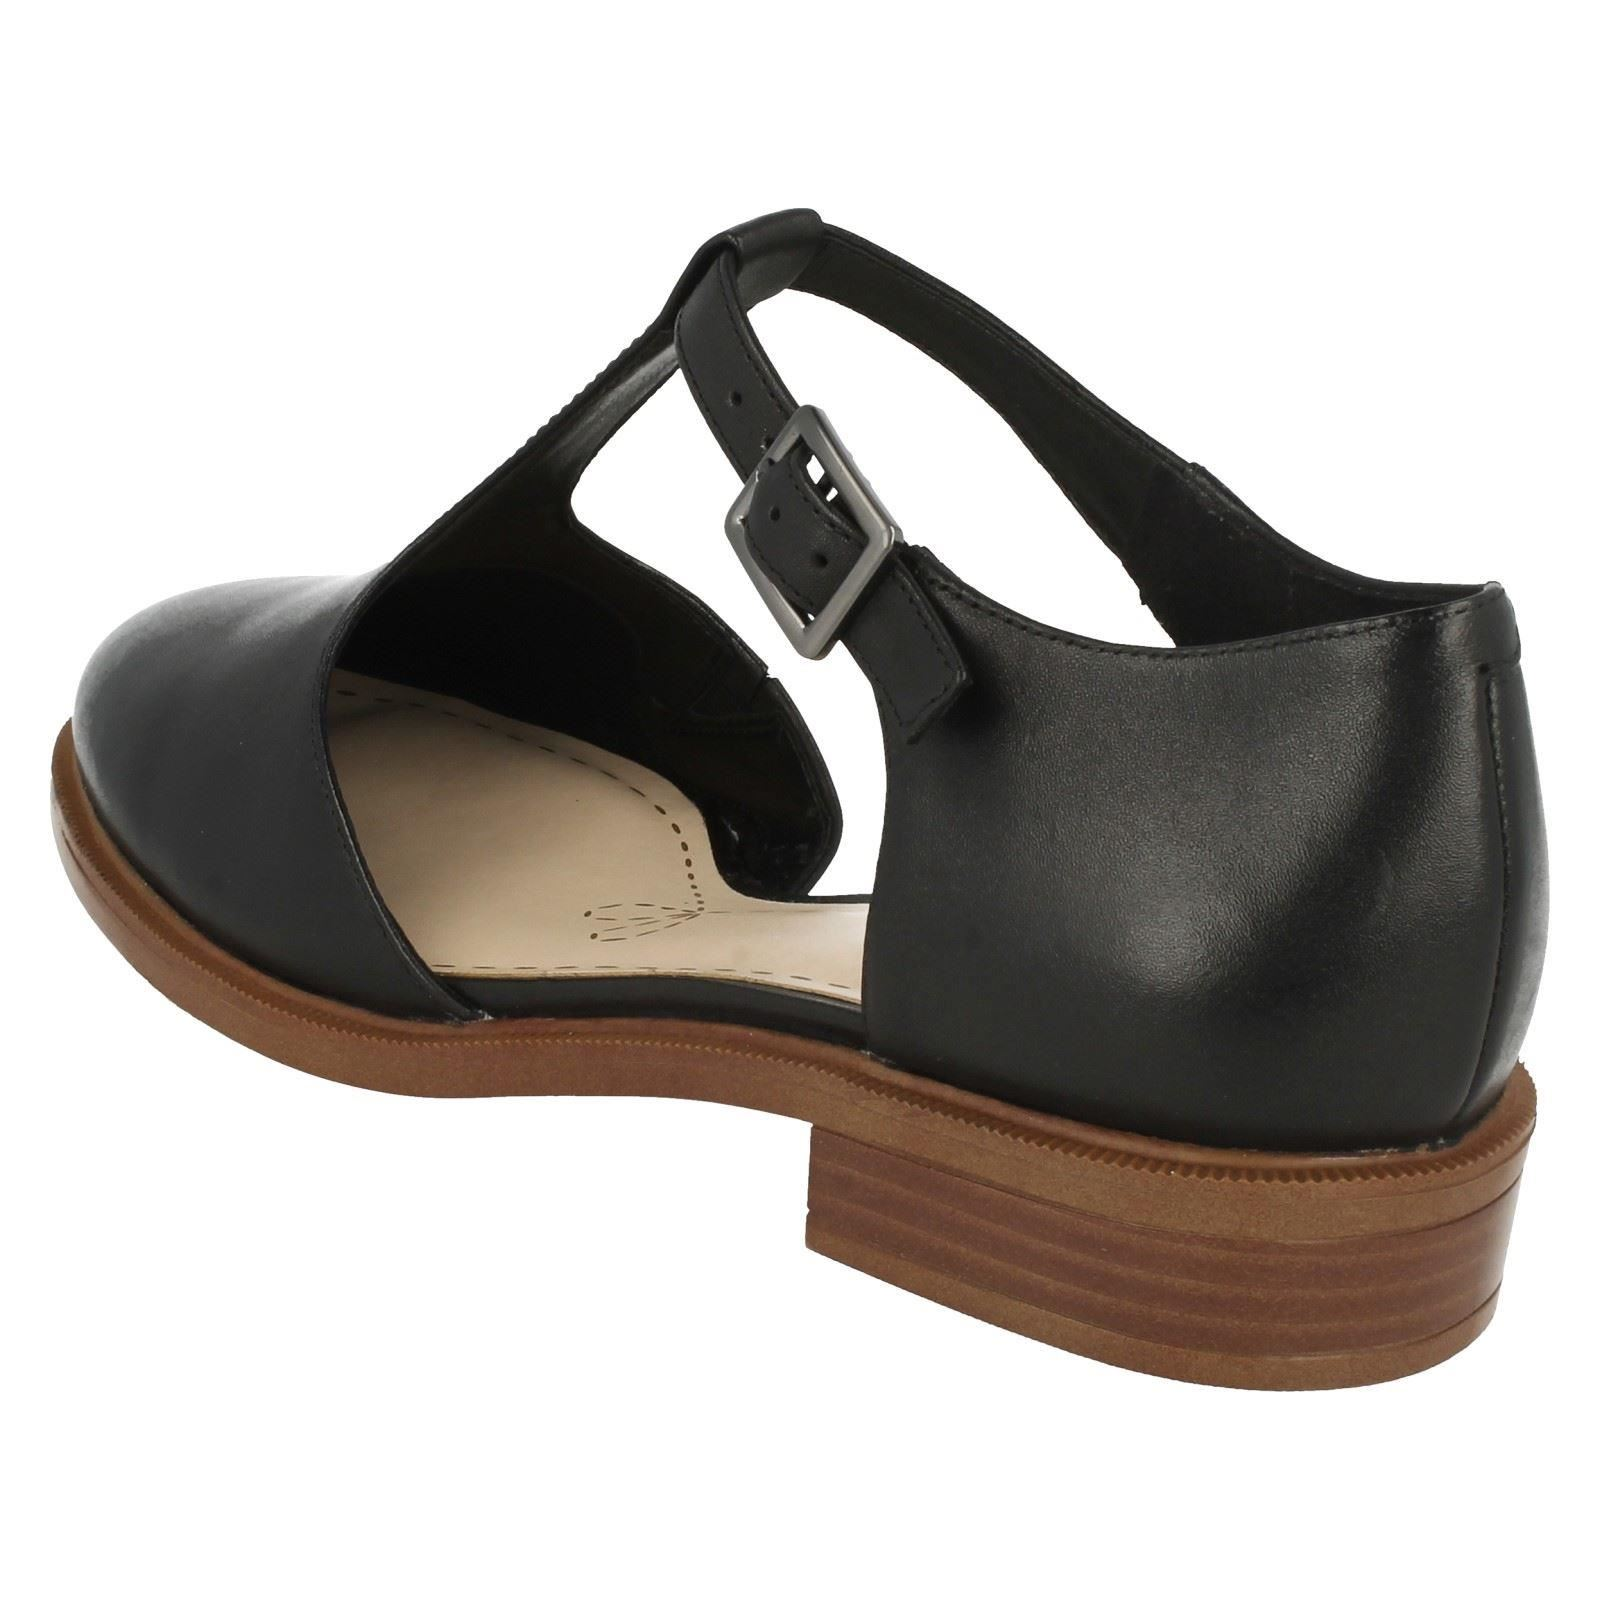 Ladies-Clarks-T-Bars-039-Taylor-Palm-039